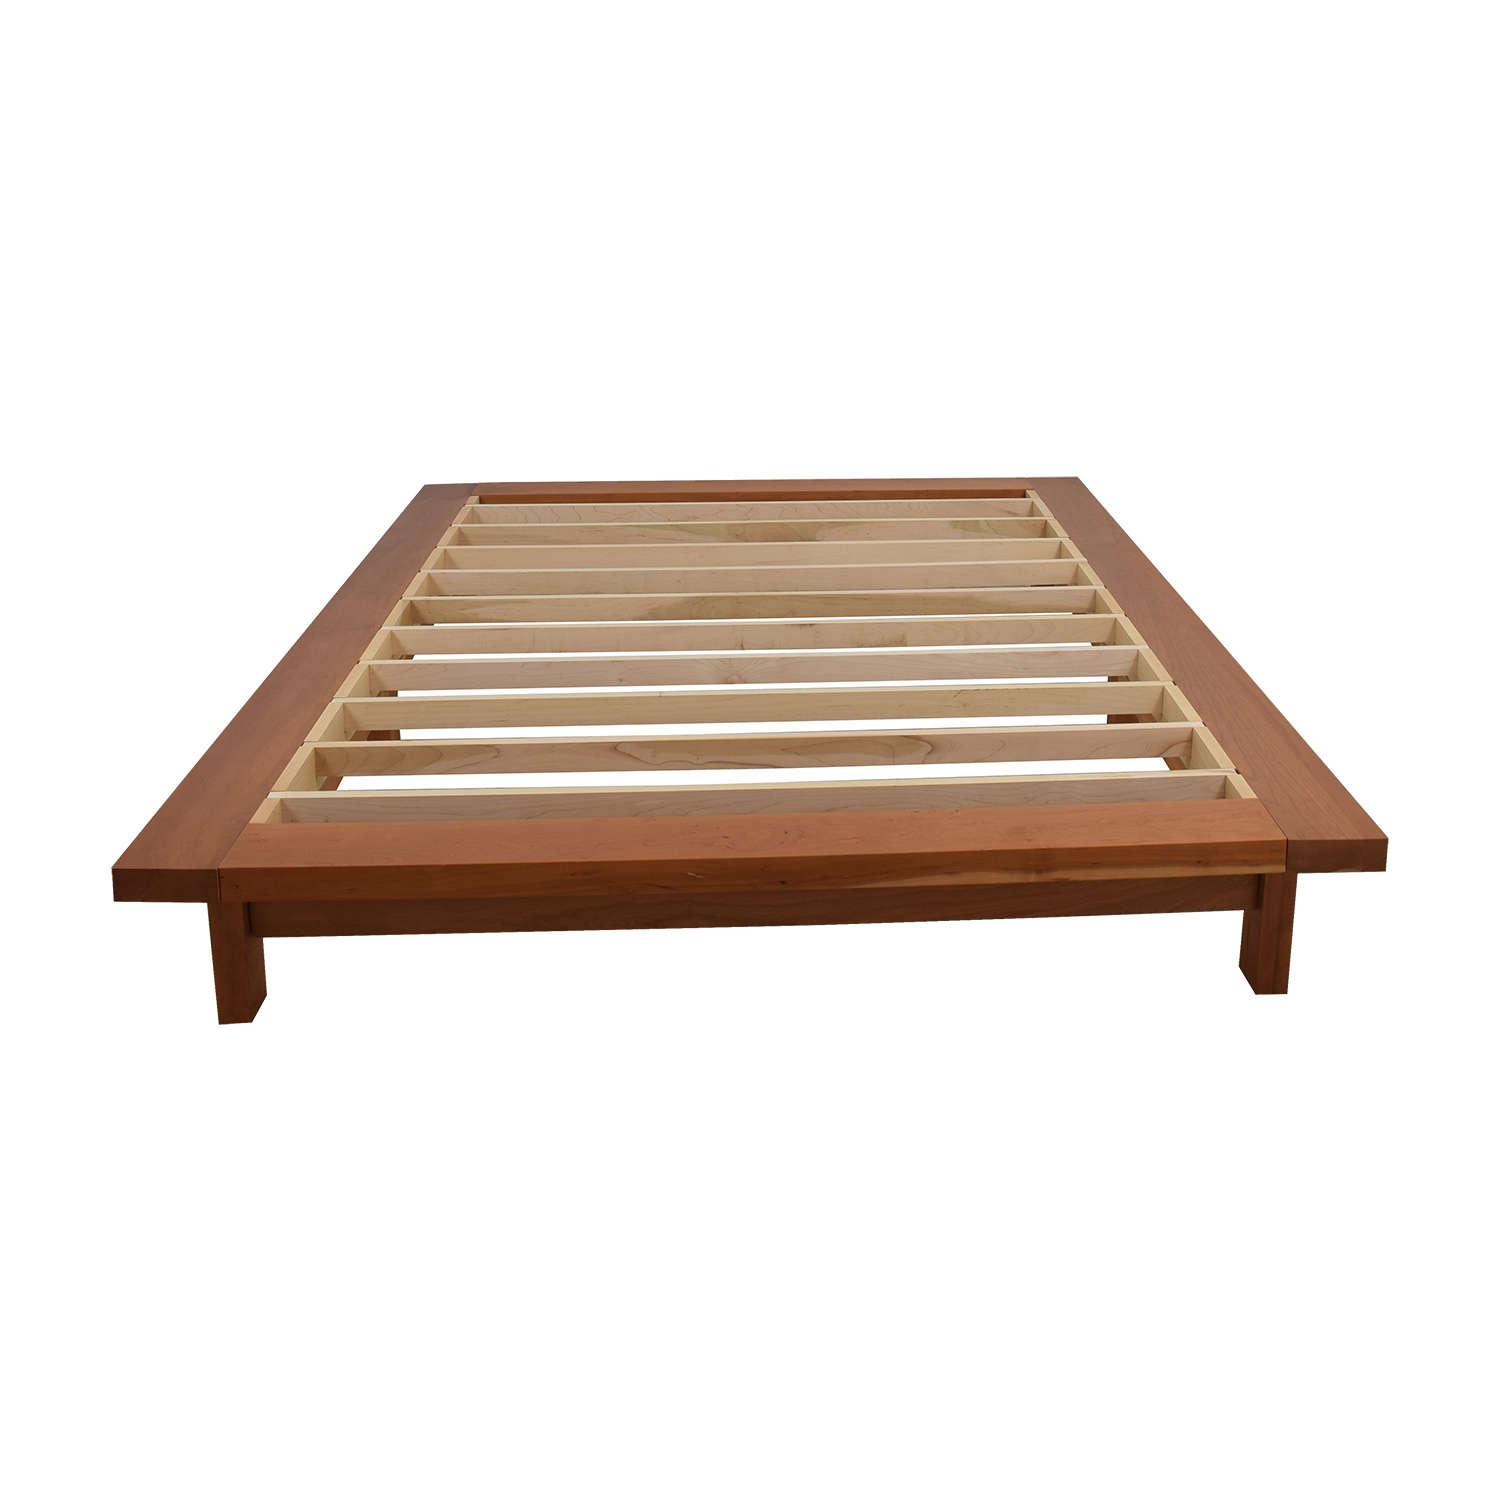 Room & Board Room & Board Campo Full Platform Bed Frame used